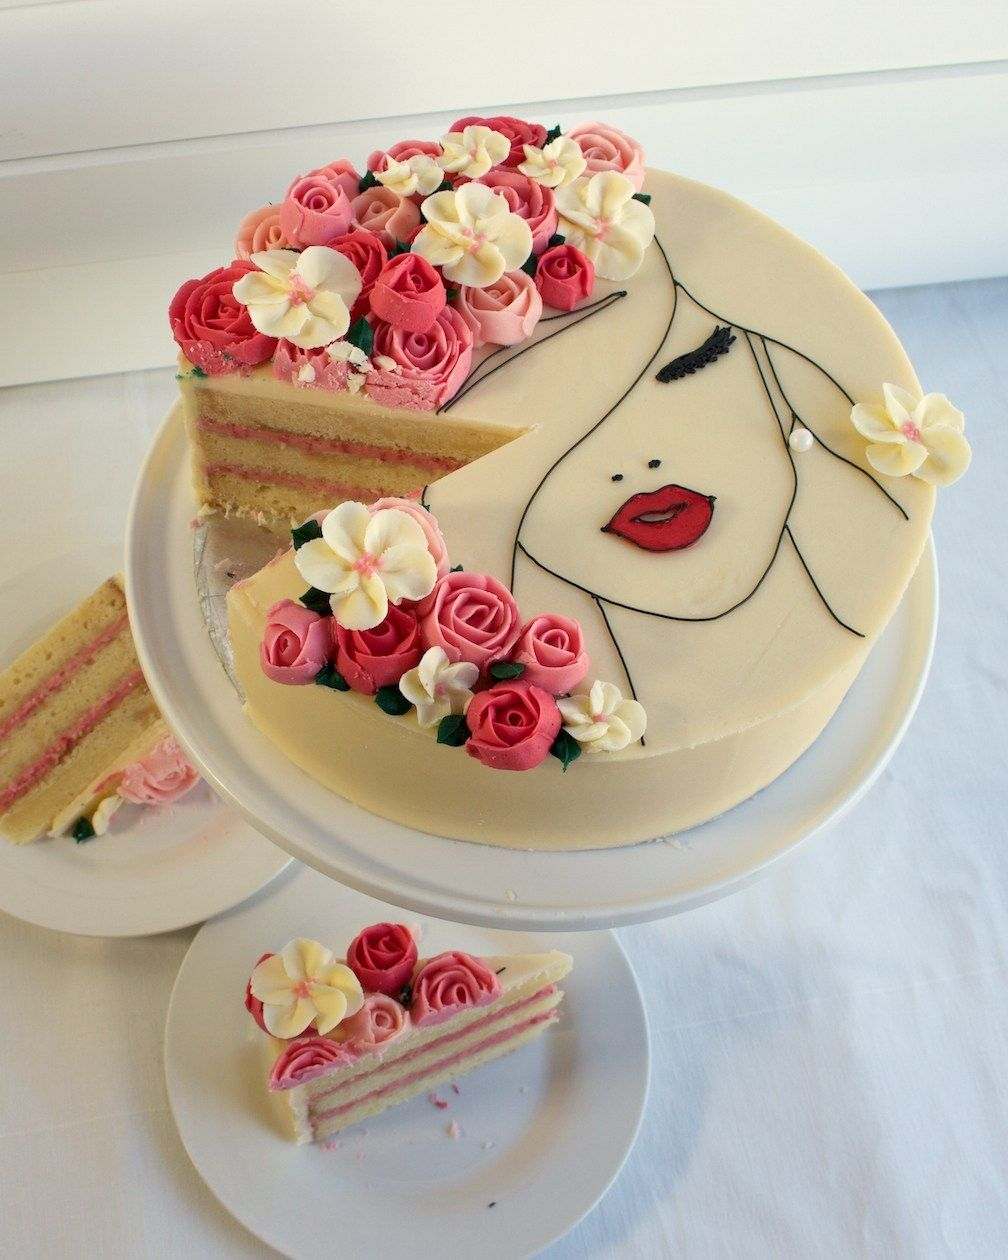 A Floral Face Cake Made Of Gorgeous Buttercream Roses Cake Style Buttercream Roses Fashion Cakes How To Make Cake